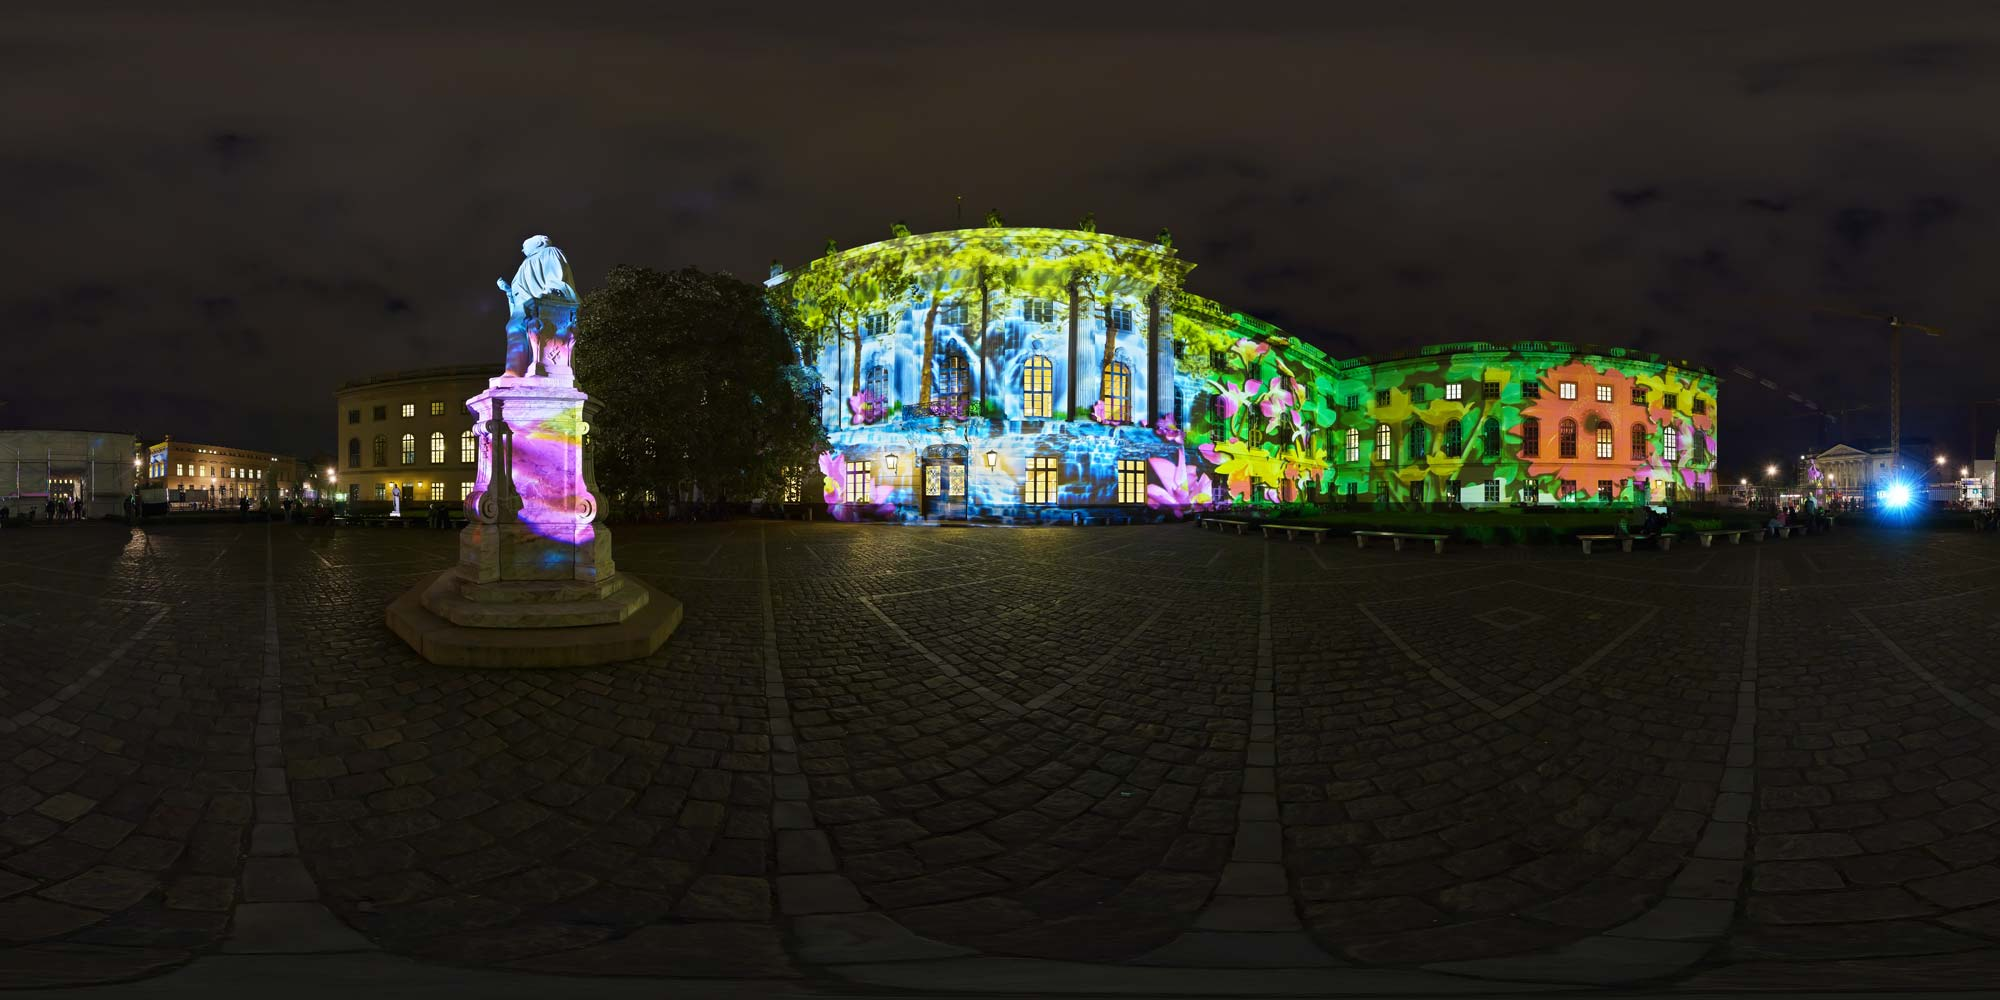 Panorama Berlin Festival of Lights - FOL 2014 Humbold Universität